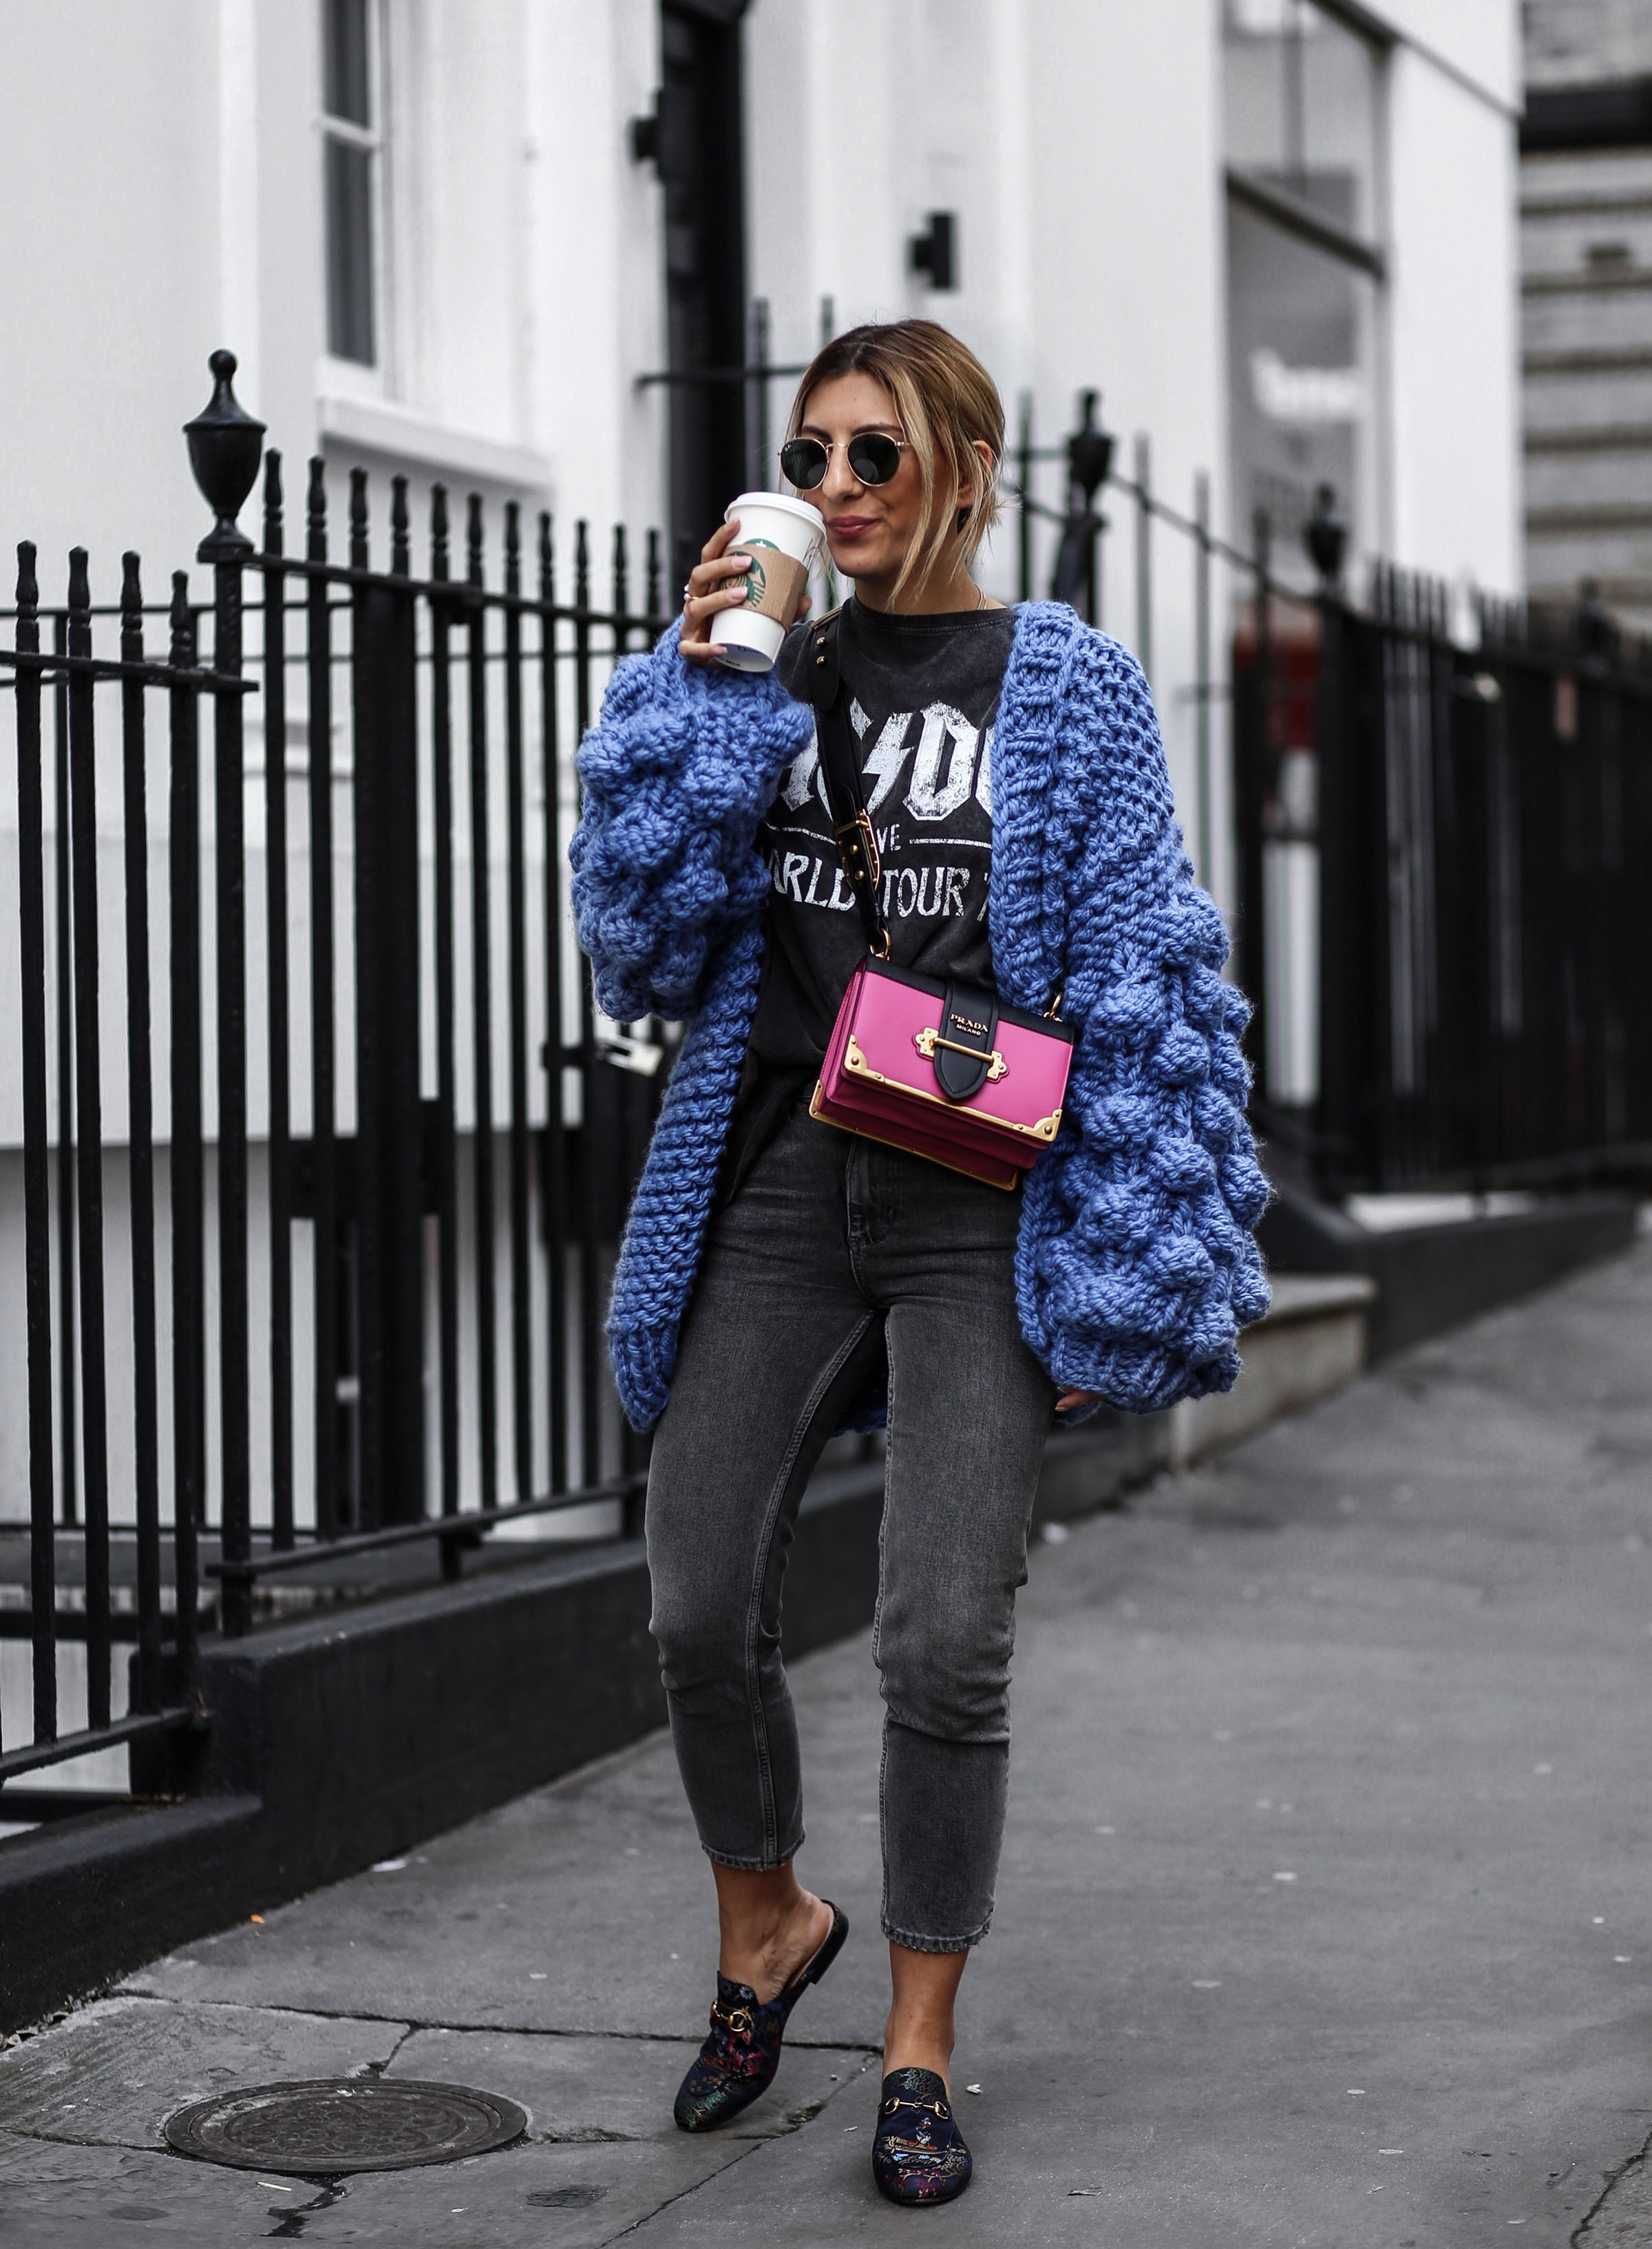 London_fashion_week_street_style_1